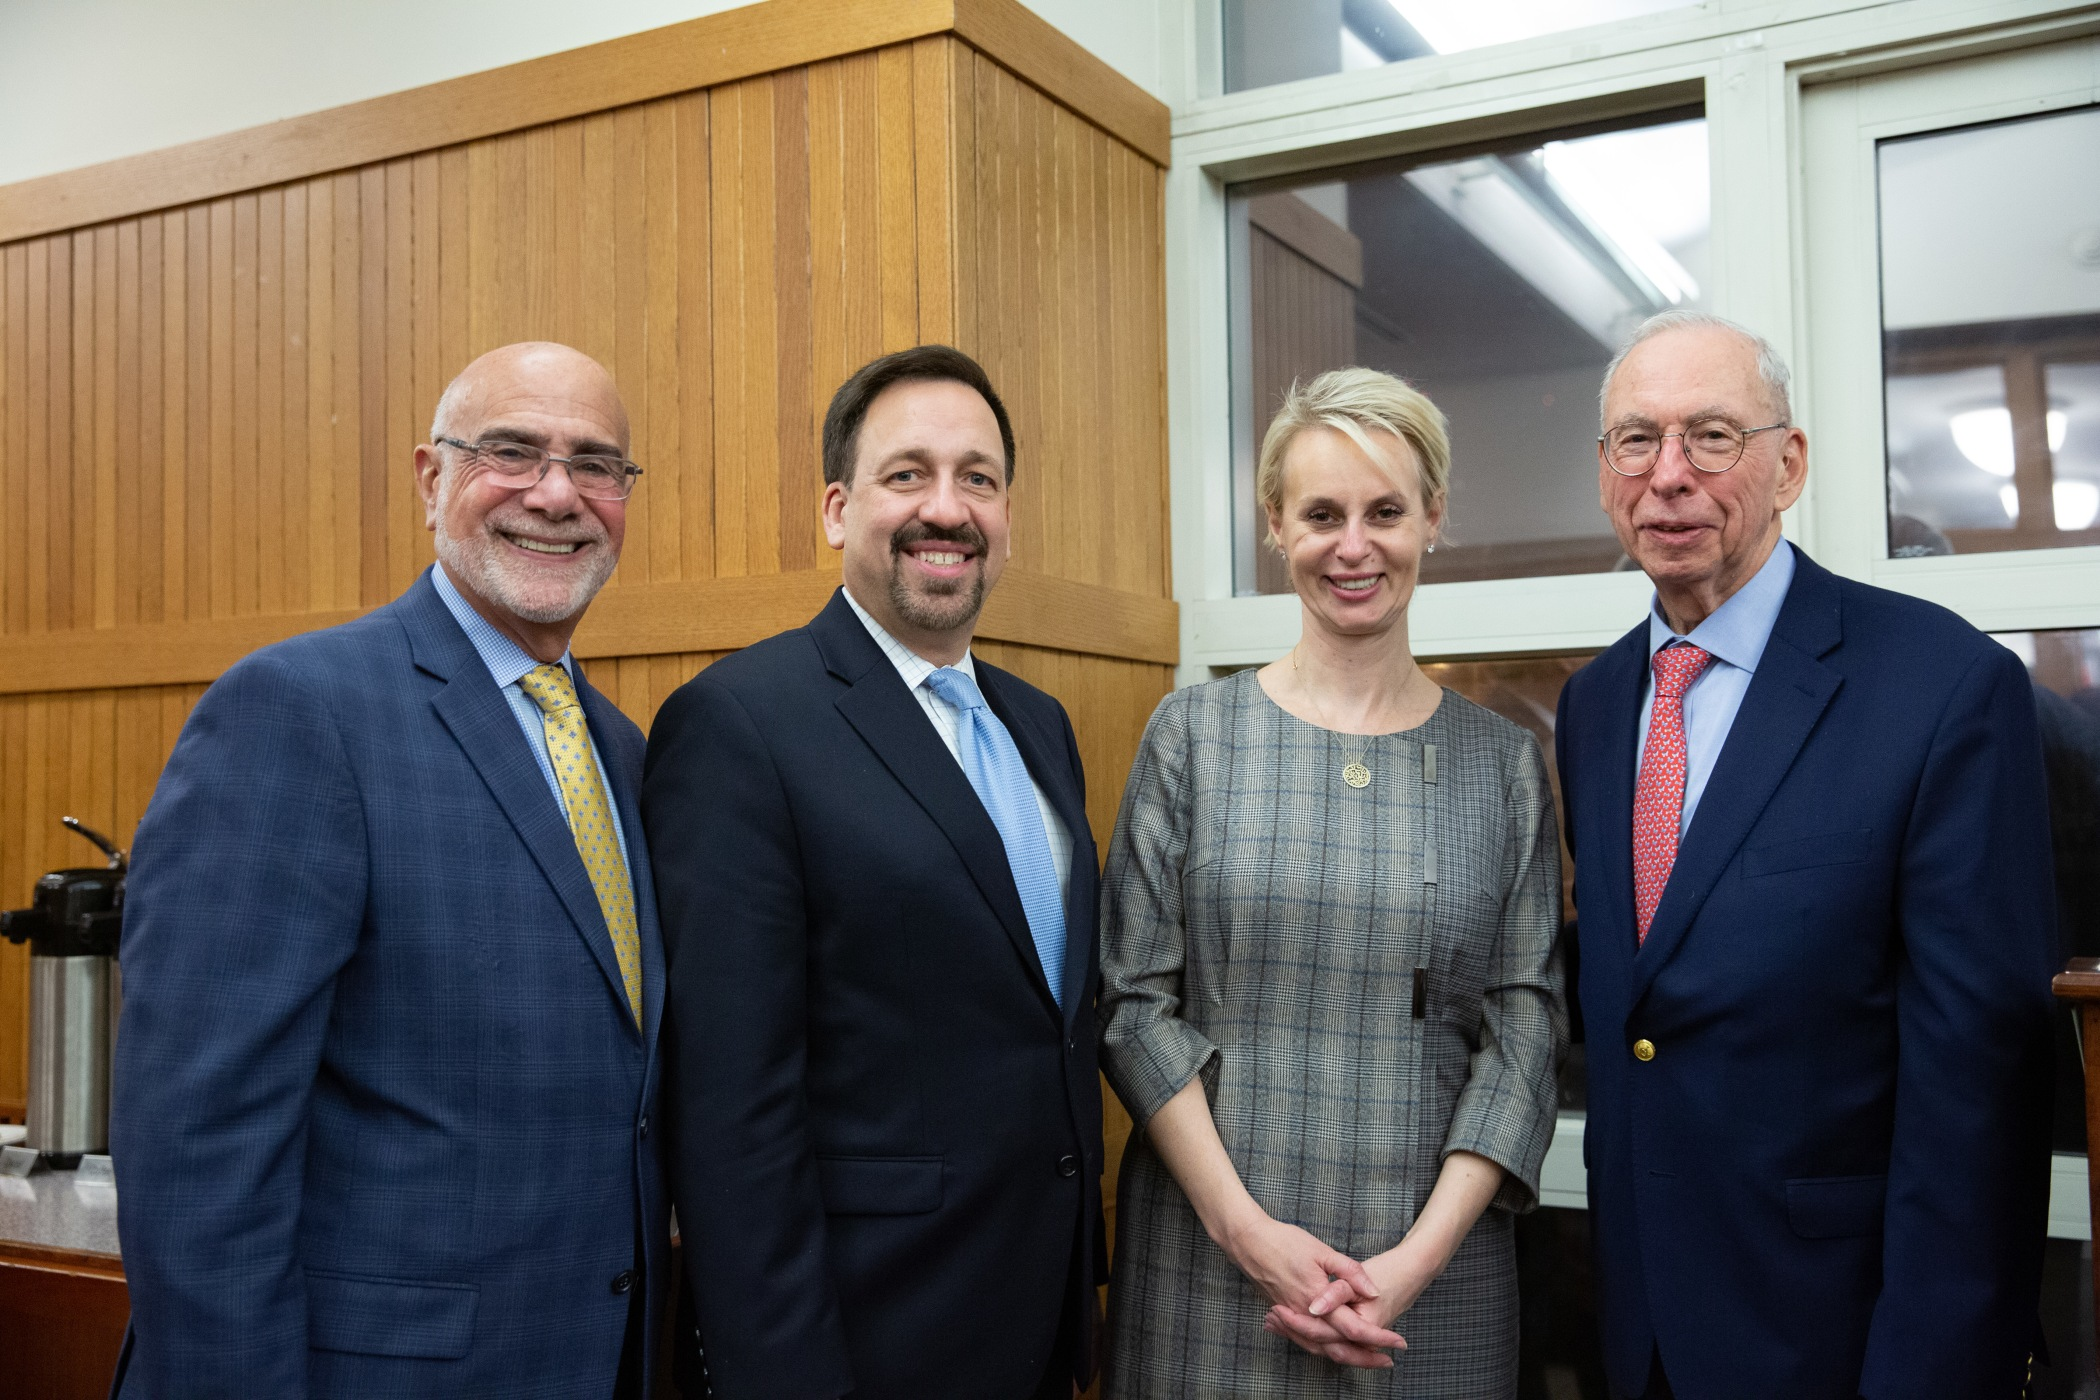 John S. Levy, DDS, Hugh S. Taylor, MD, Elena Ratner, MD and Peter E. Schwartz, MD